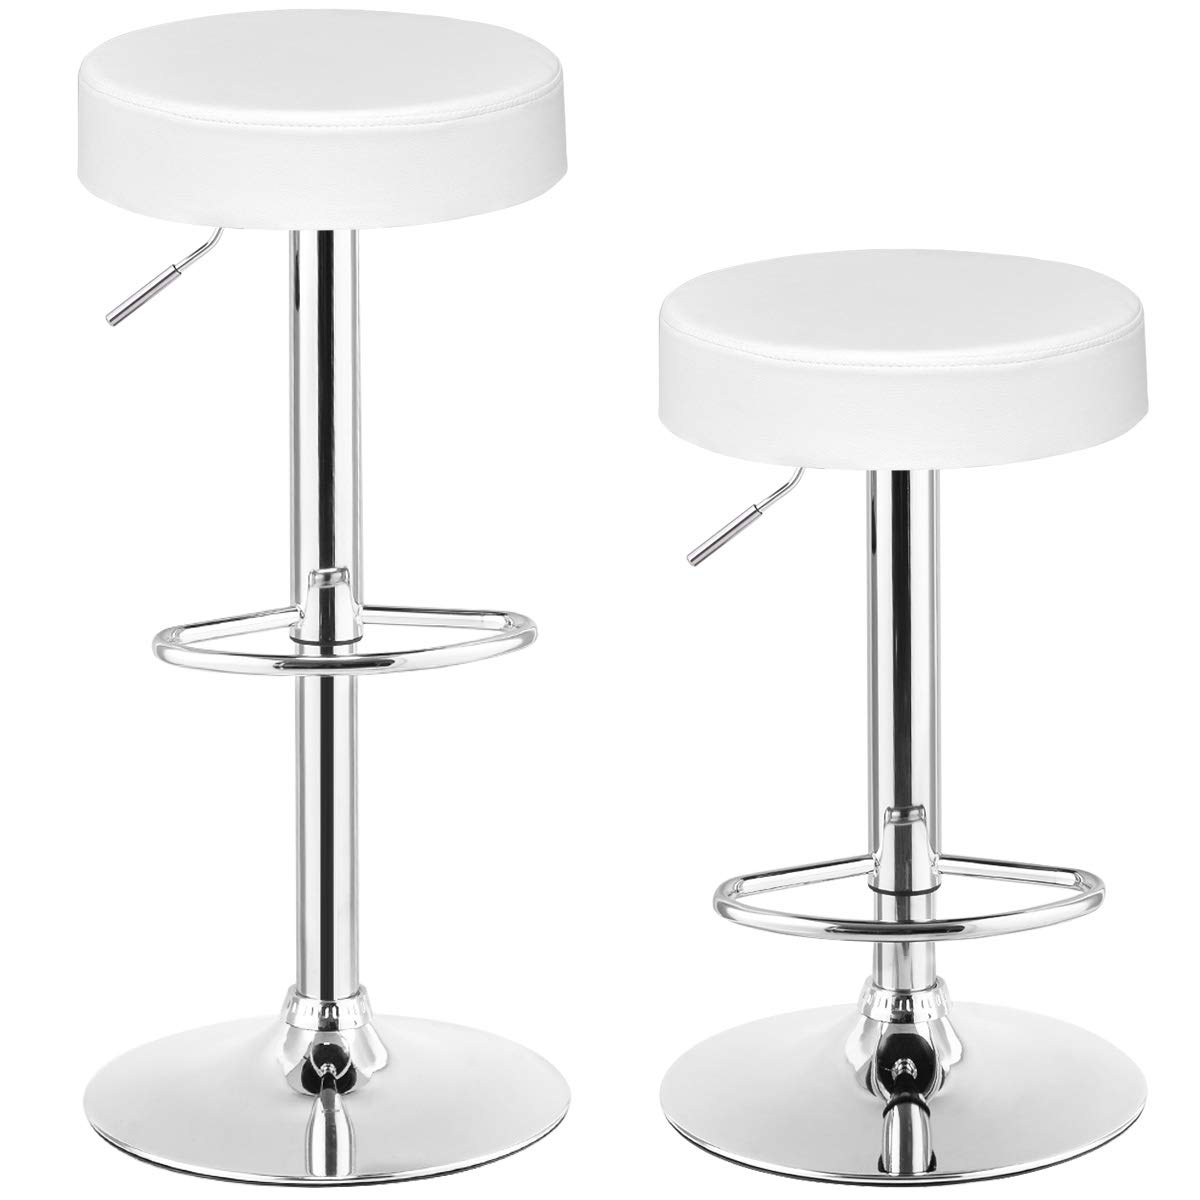 COSTWAY Swivel Bar Stool Round PU Leather Height Adjustable Chair Pub Stool w/Chrome Footrest (White, 2 pcs)